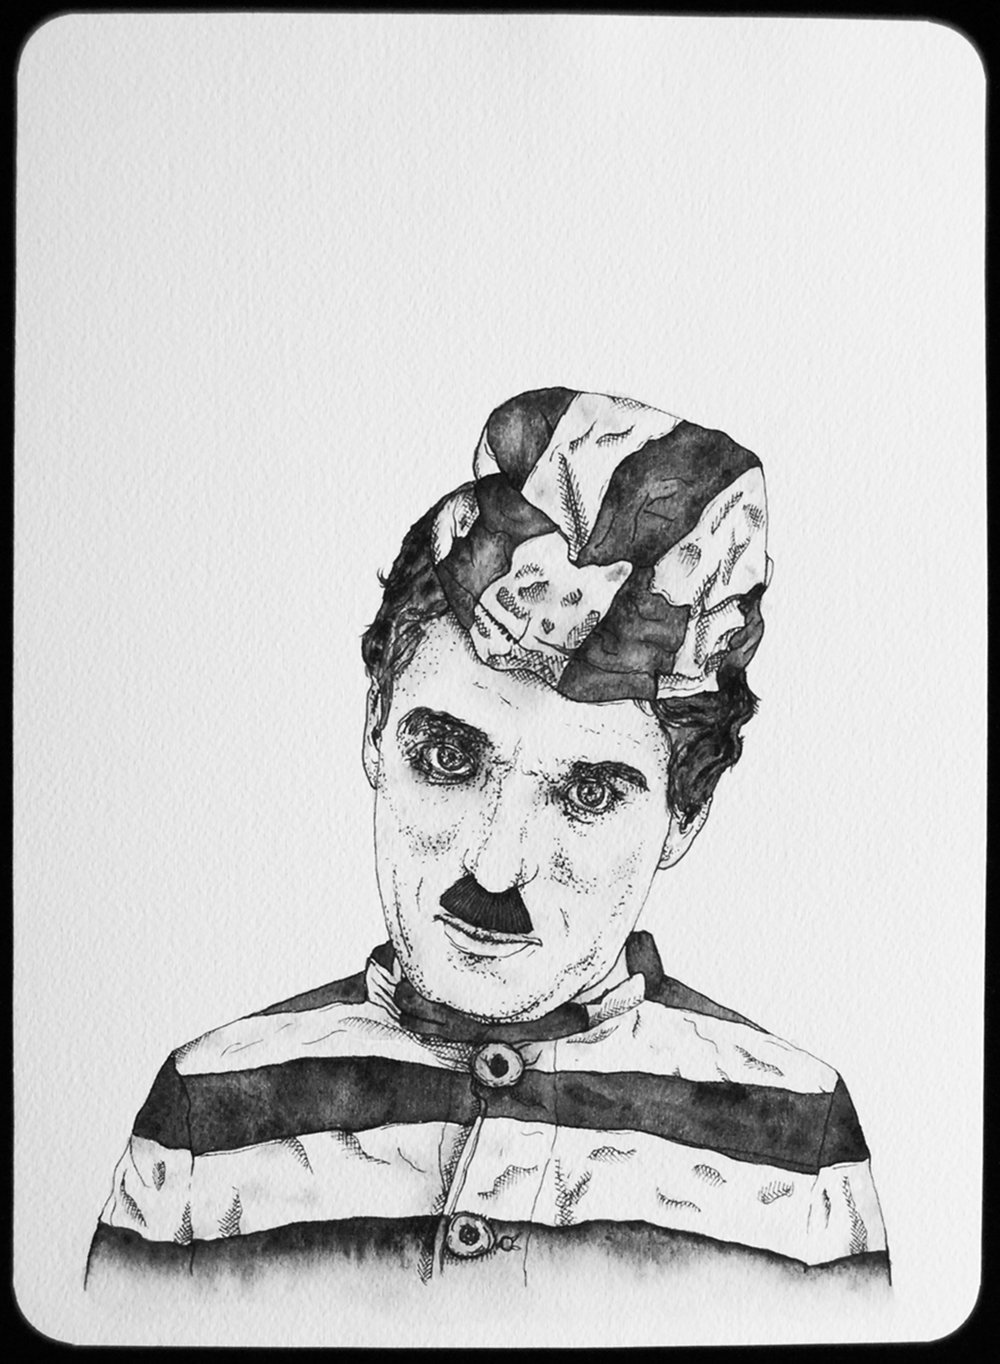 Charlie Chaplin, The Adventurer, 1917 Prison stripes were immortalized in early Hollywood films, 2011  |  11 x 8 inches  |   archival ink and gouache on paper